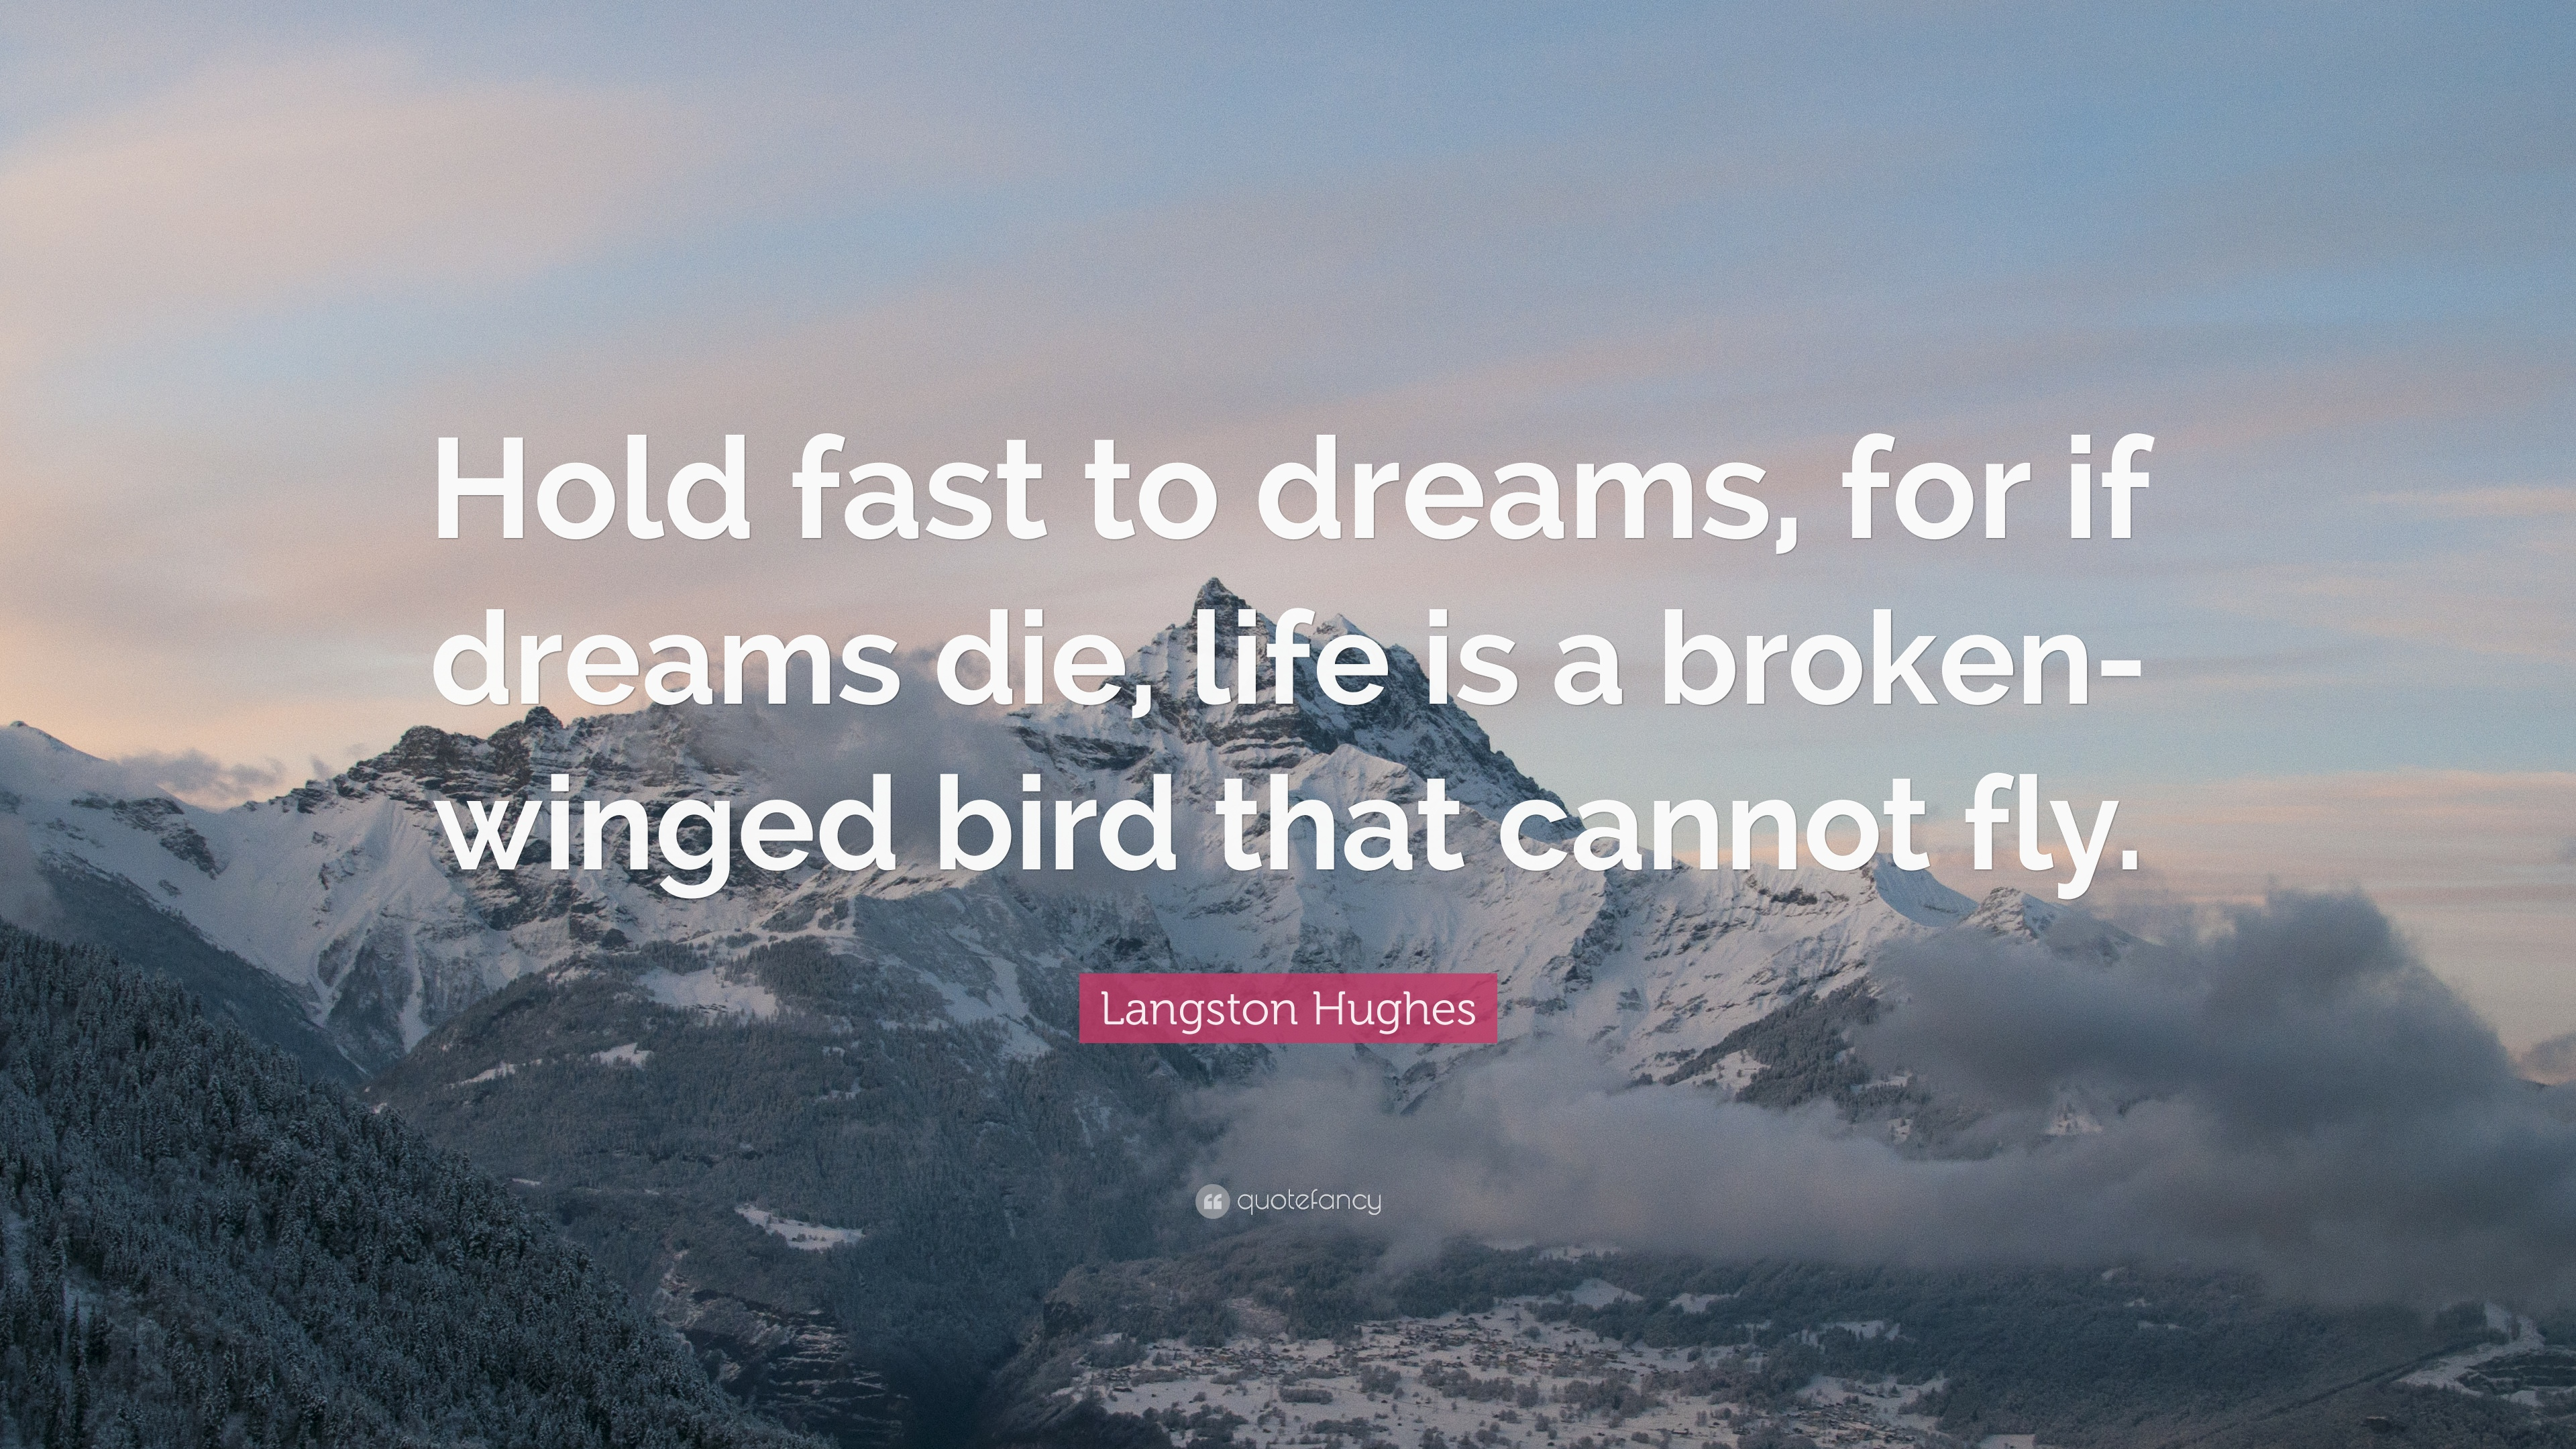 HOLD FAST TO DREAMS EPUB DOWNLOAD